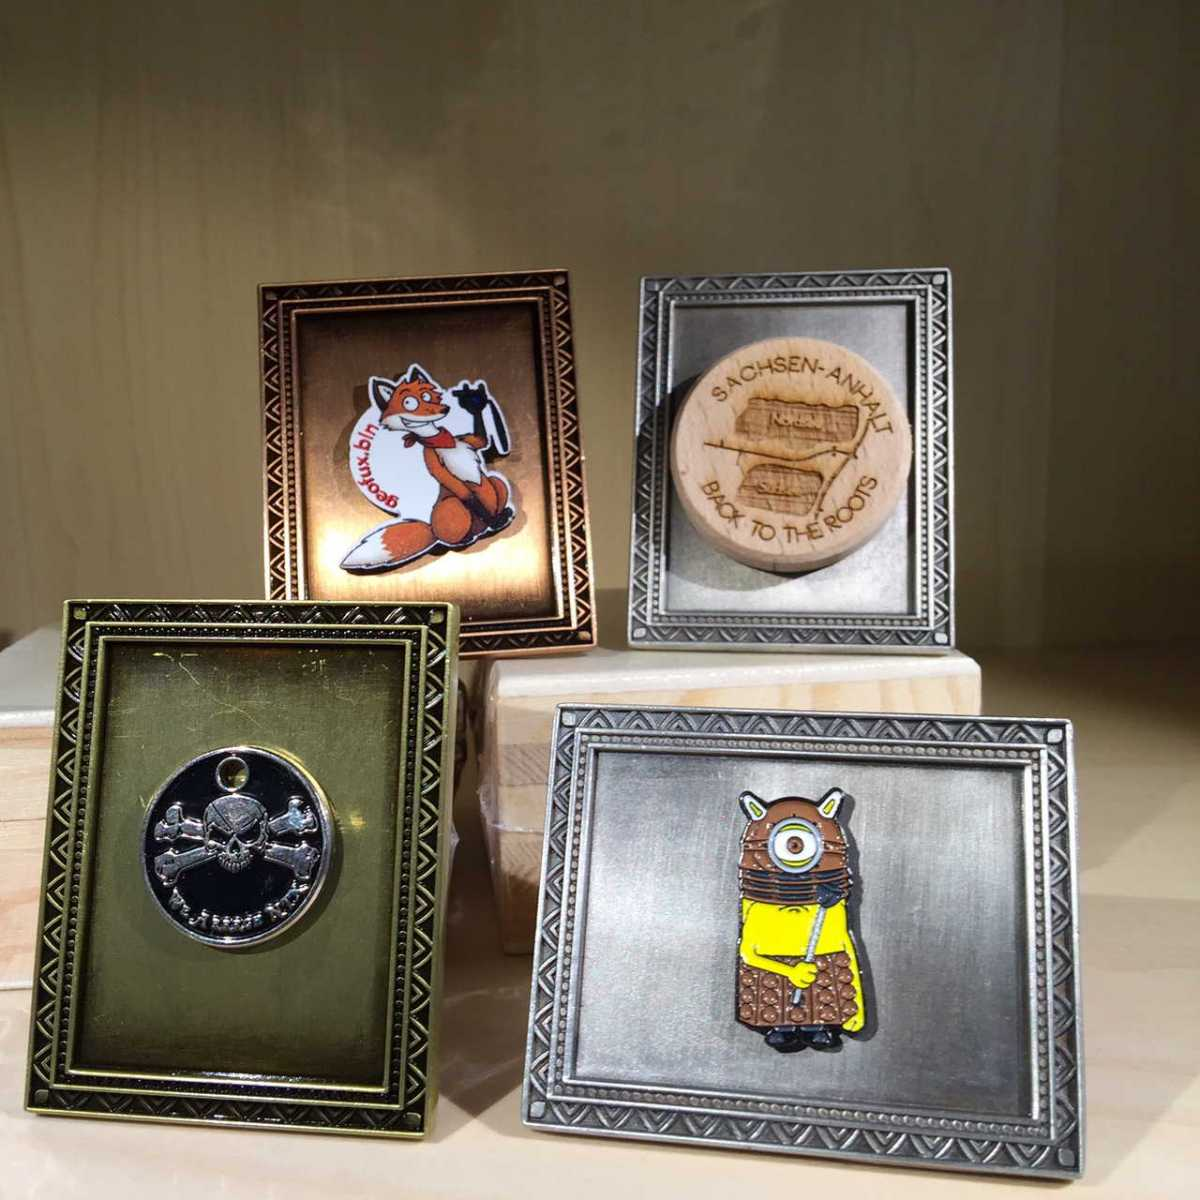 """The Photo-Frame Geocoin"" - Just frame your memories - ohne GeoToken"